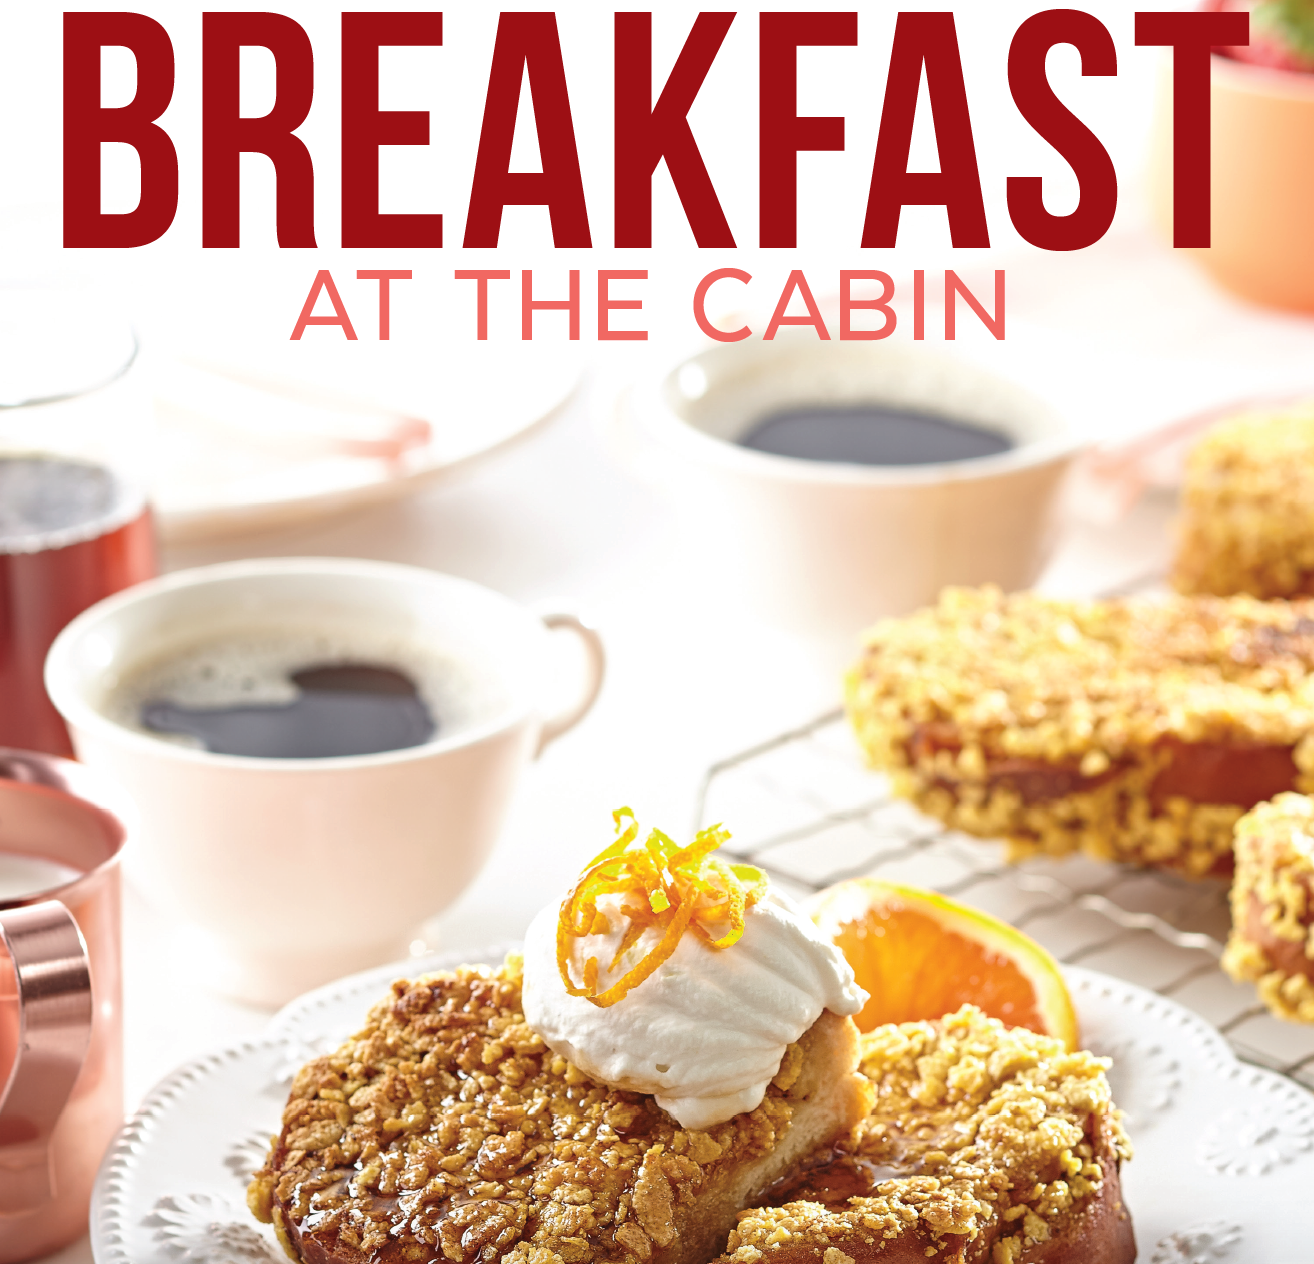 Breakfastcabin